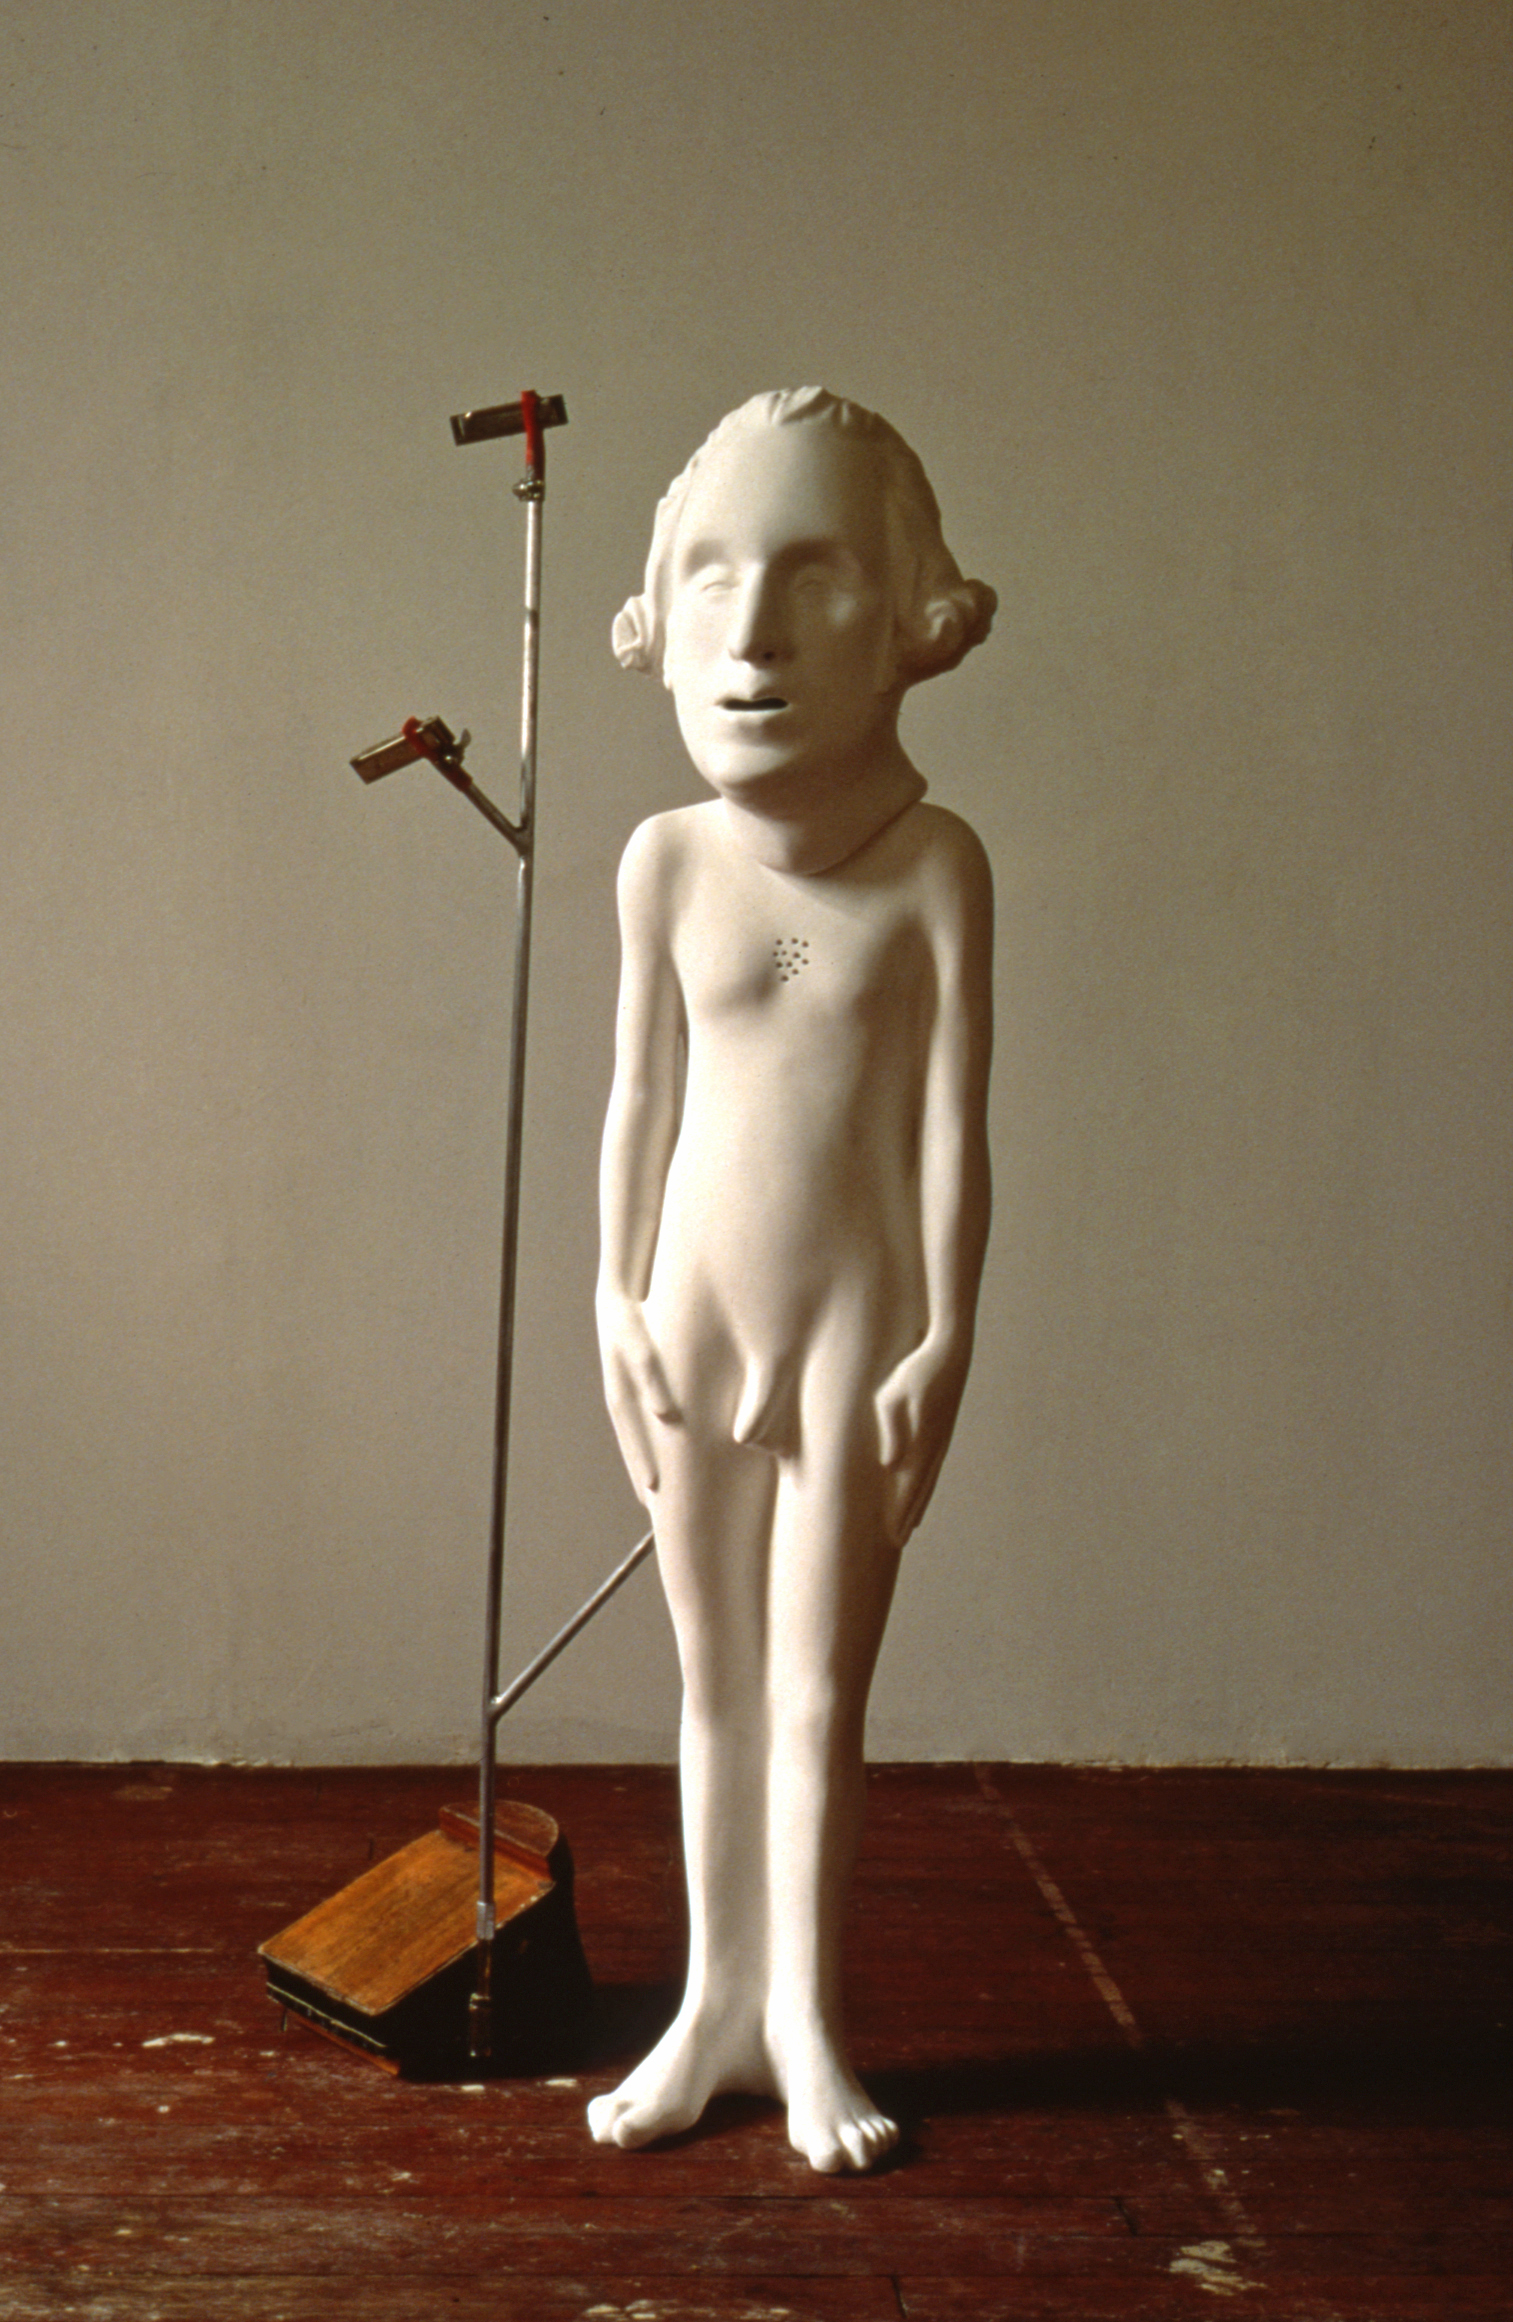 GEORGE (1993) / Fixall®, rabbit skin glue & whiting, steel, tubing, harmonicas, 57 X 28 X 16""